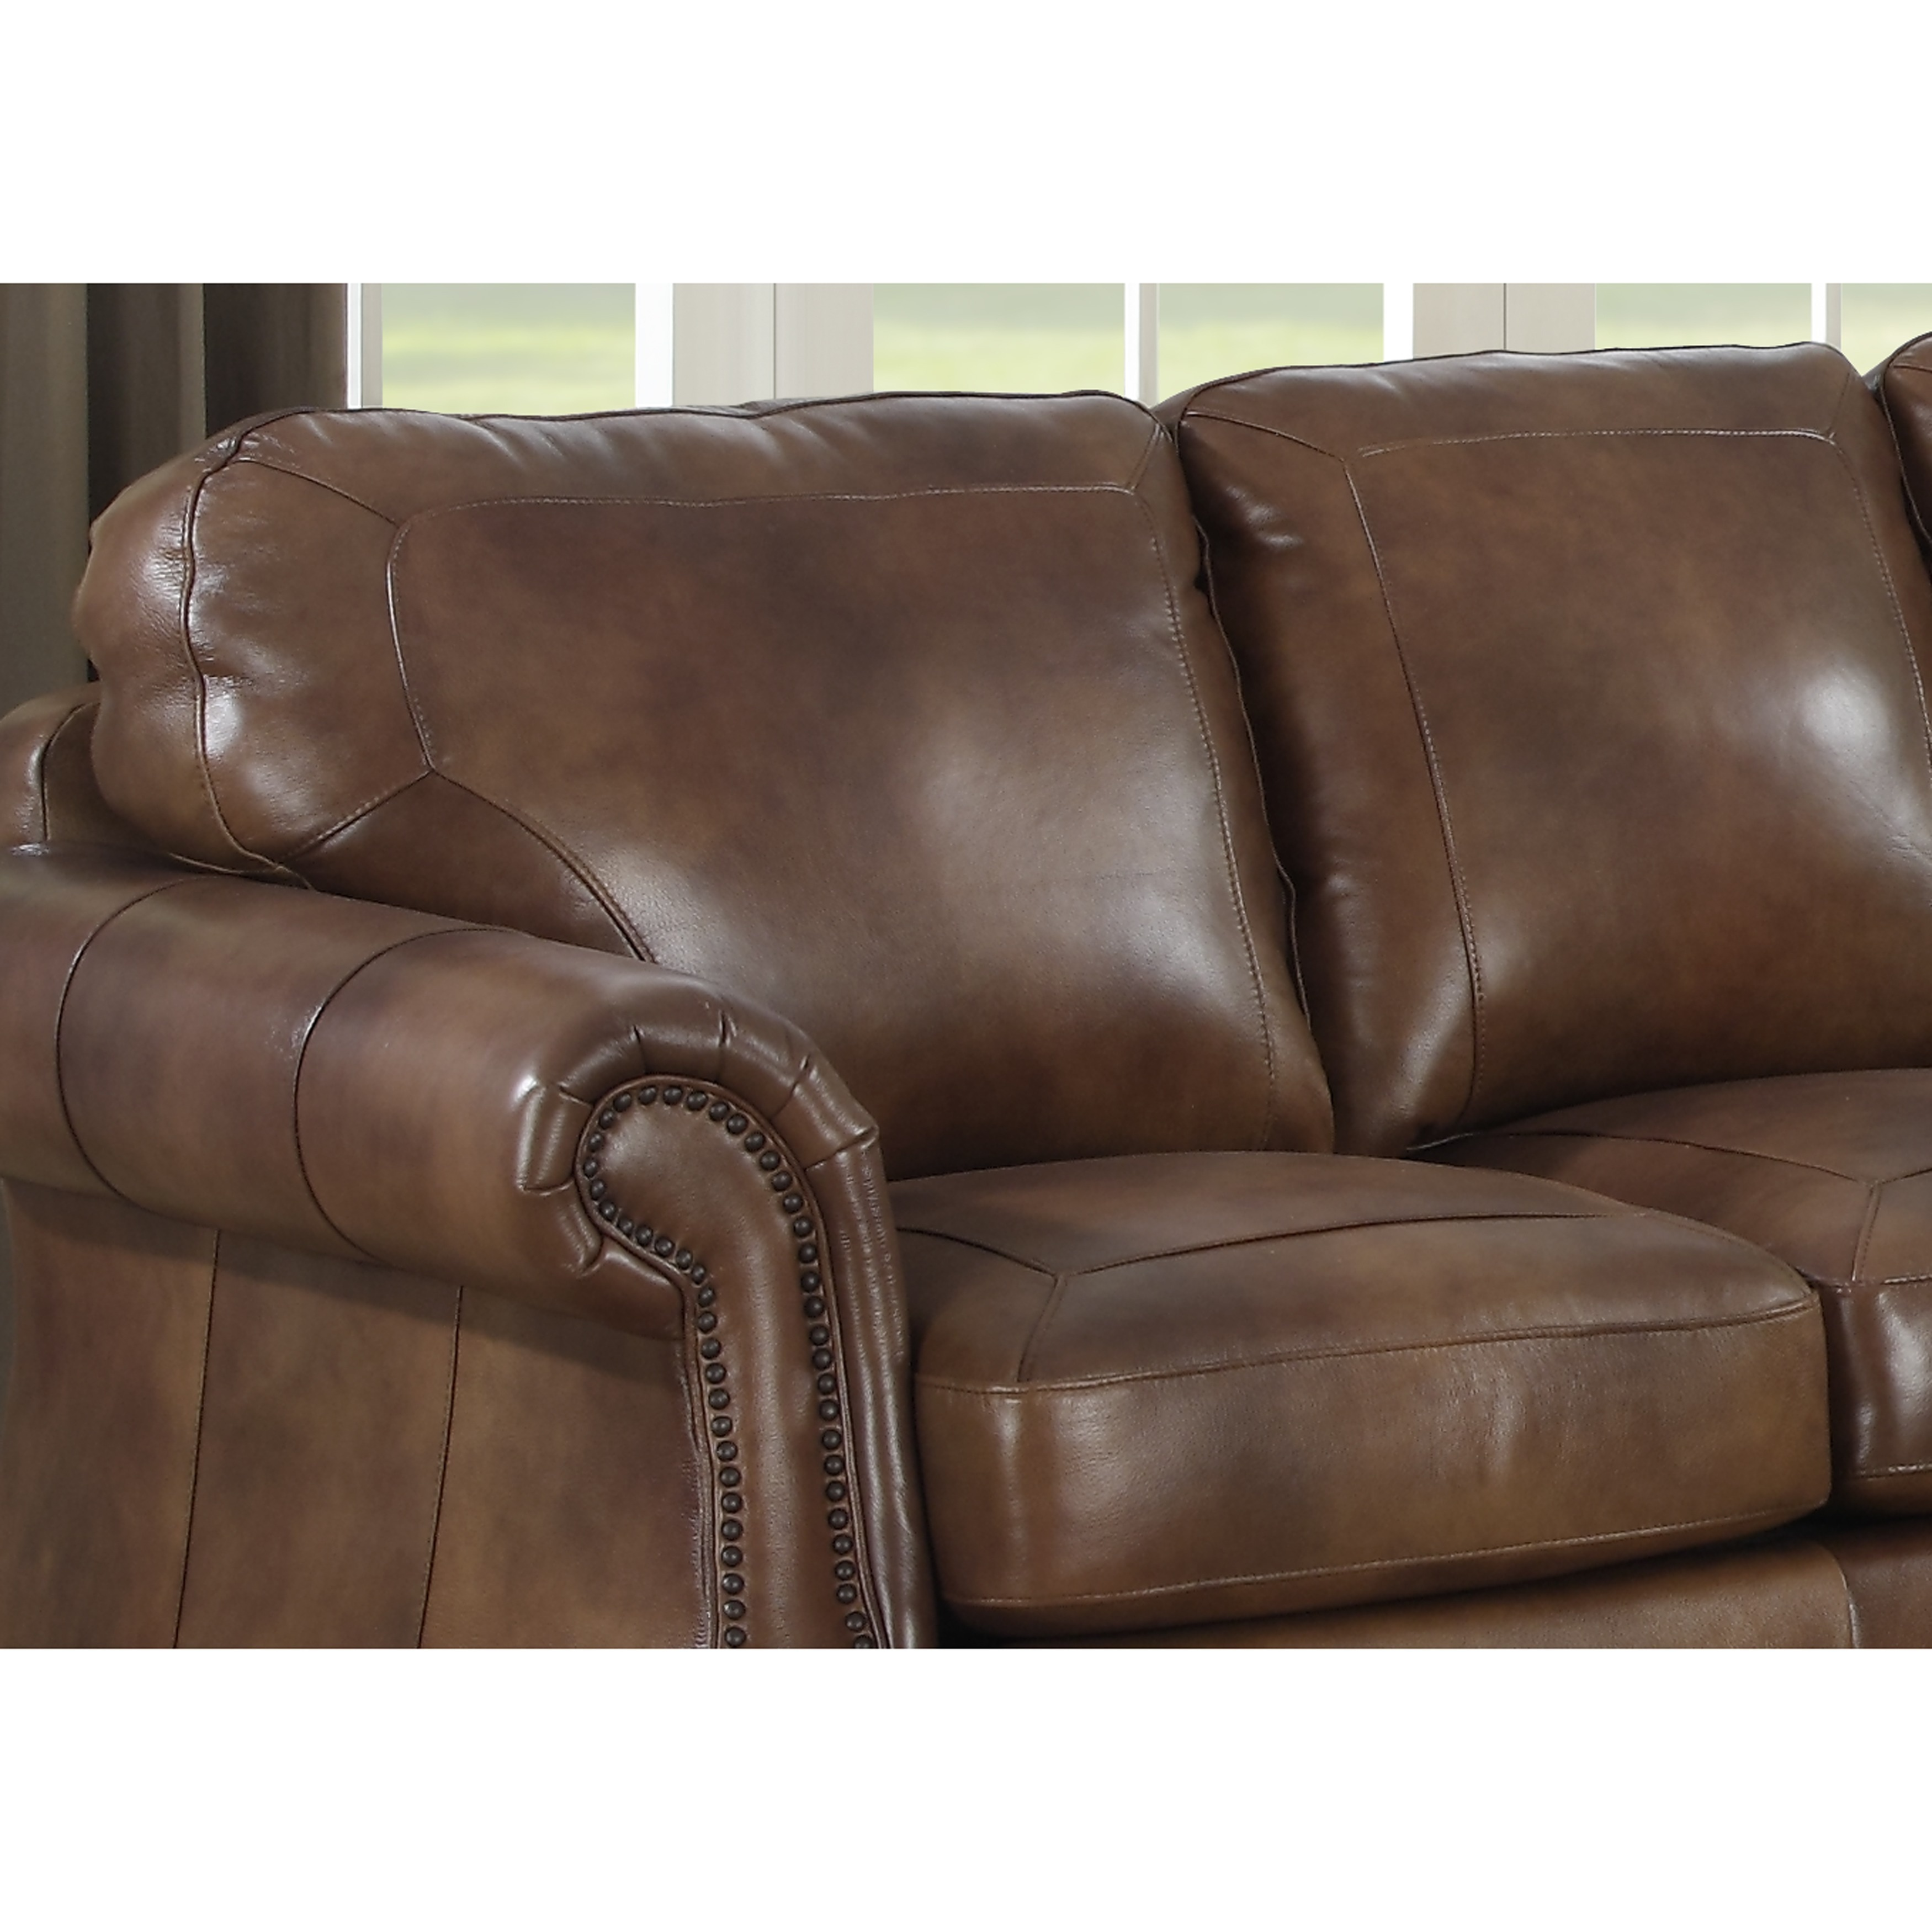 shop sterling cognac brown italian leather sofa loveseat and chair